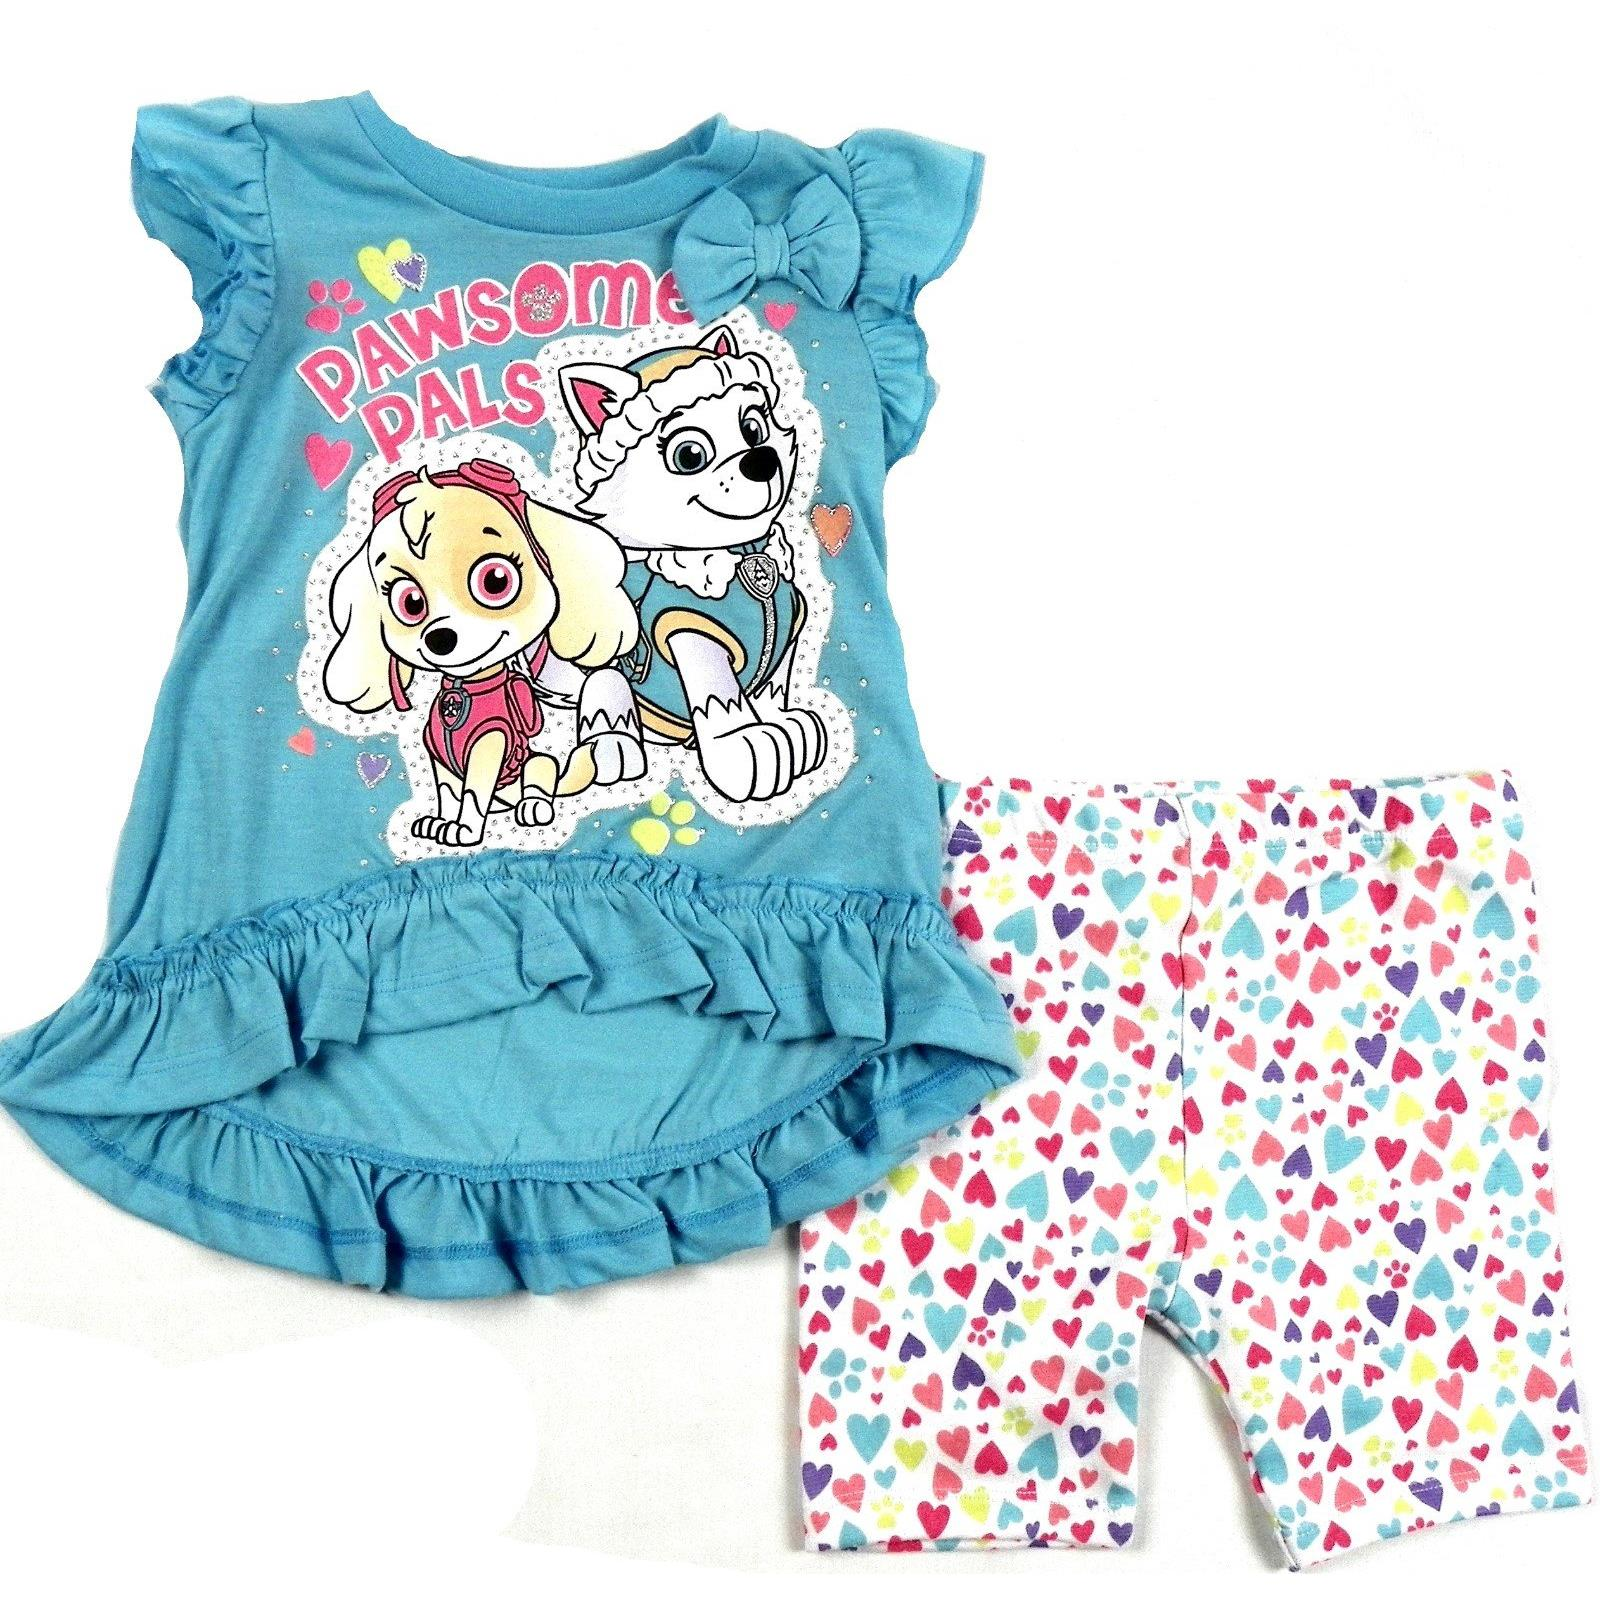 Paw Patrol Toddler Girl's Bike Short Set with Tunic, Pawsome Pals